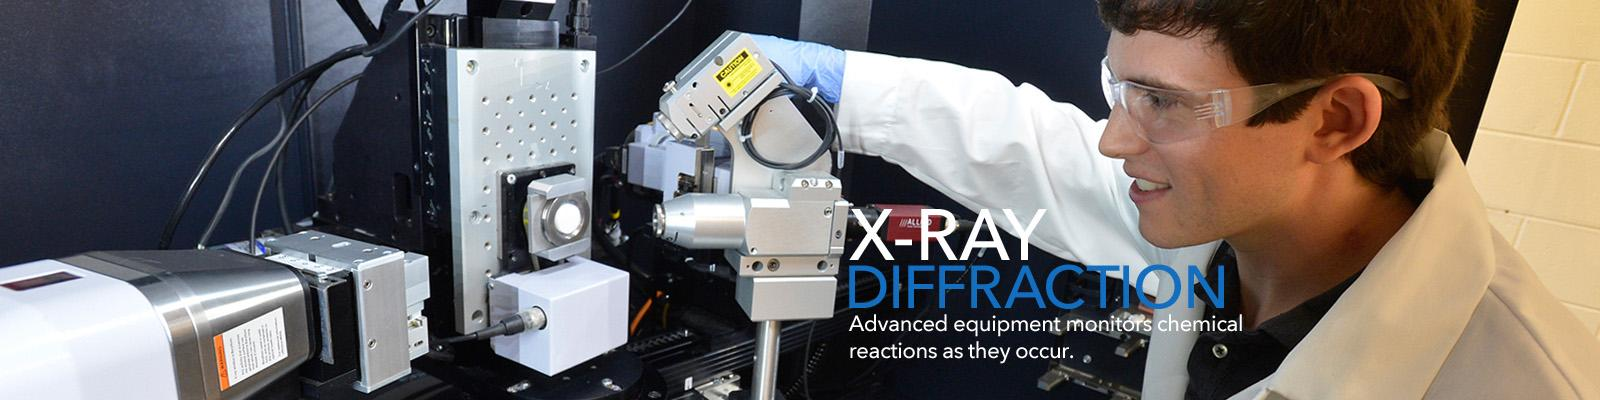 Advanced equipment monitors chemical reactions as they occur.